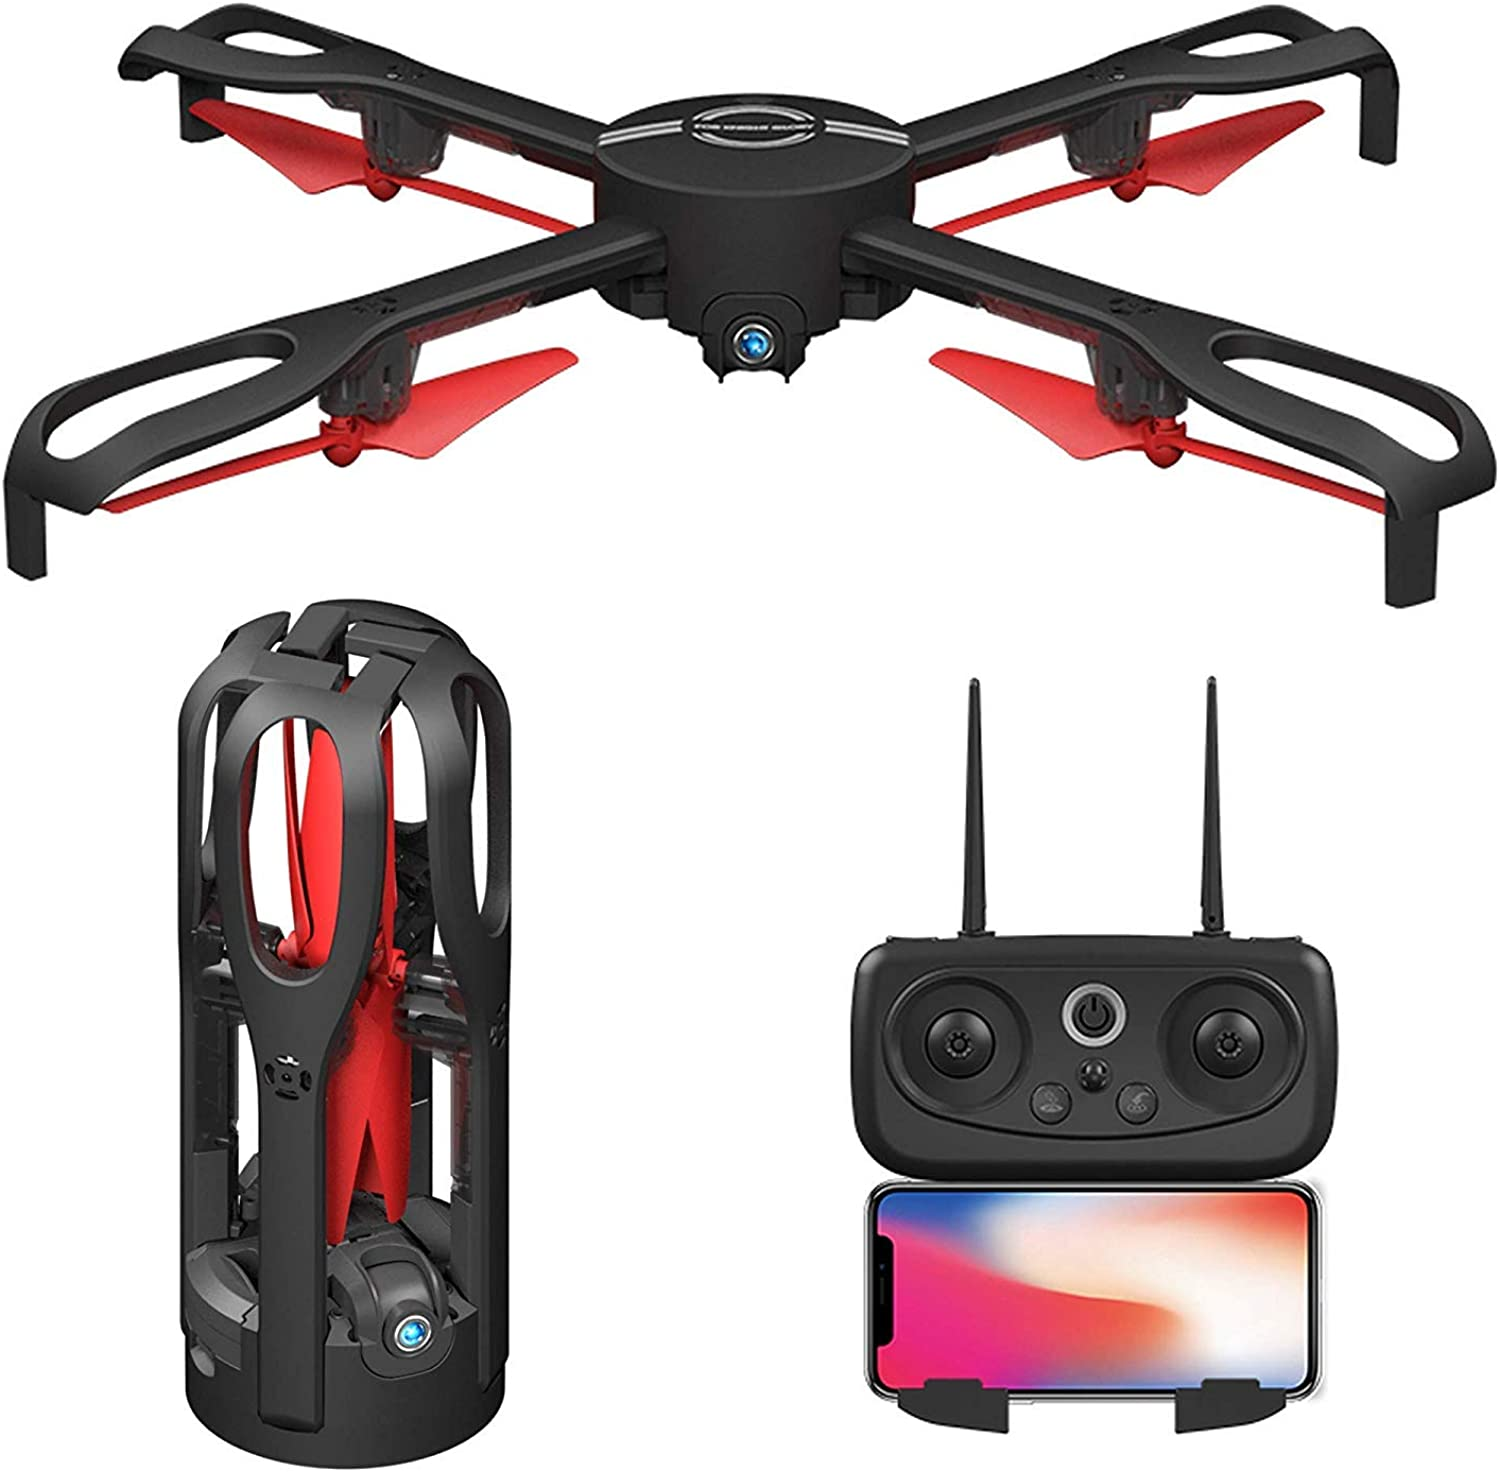 Remote Control Foldable GPS Drones with 1080P 5MP HD Camera 5G FPV Live Video Mobile APP Control RC Quadcopter Helicopter Aircraft - Return Home Altitude Hold Follow Me Electric Fence